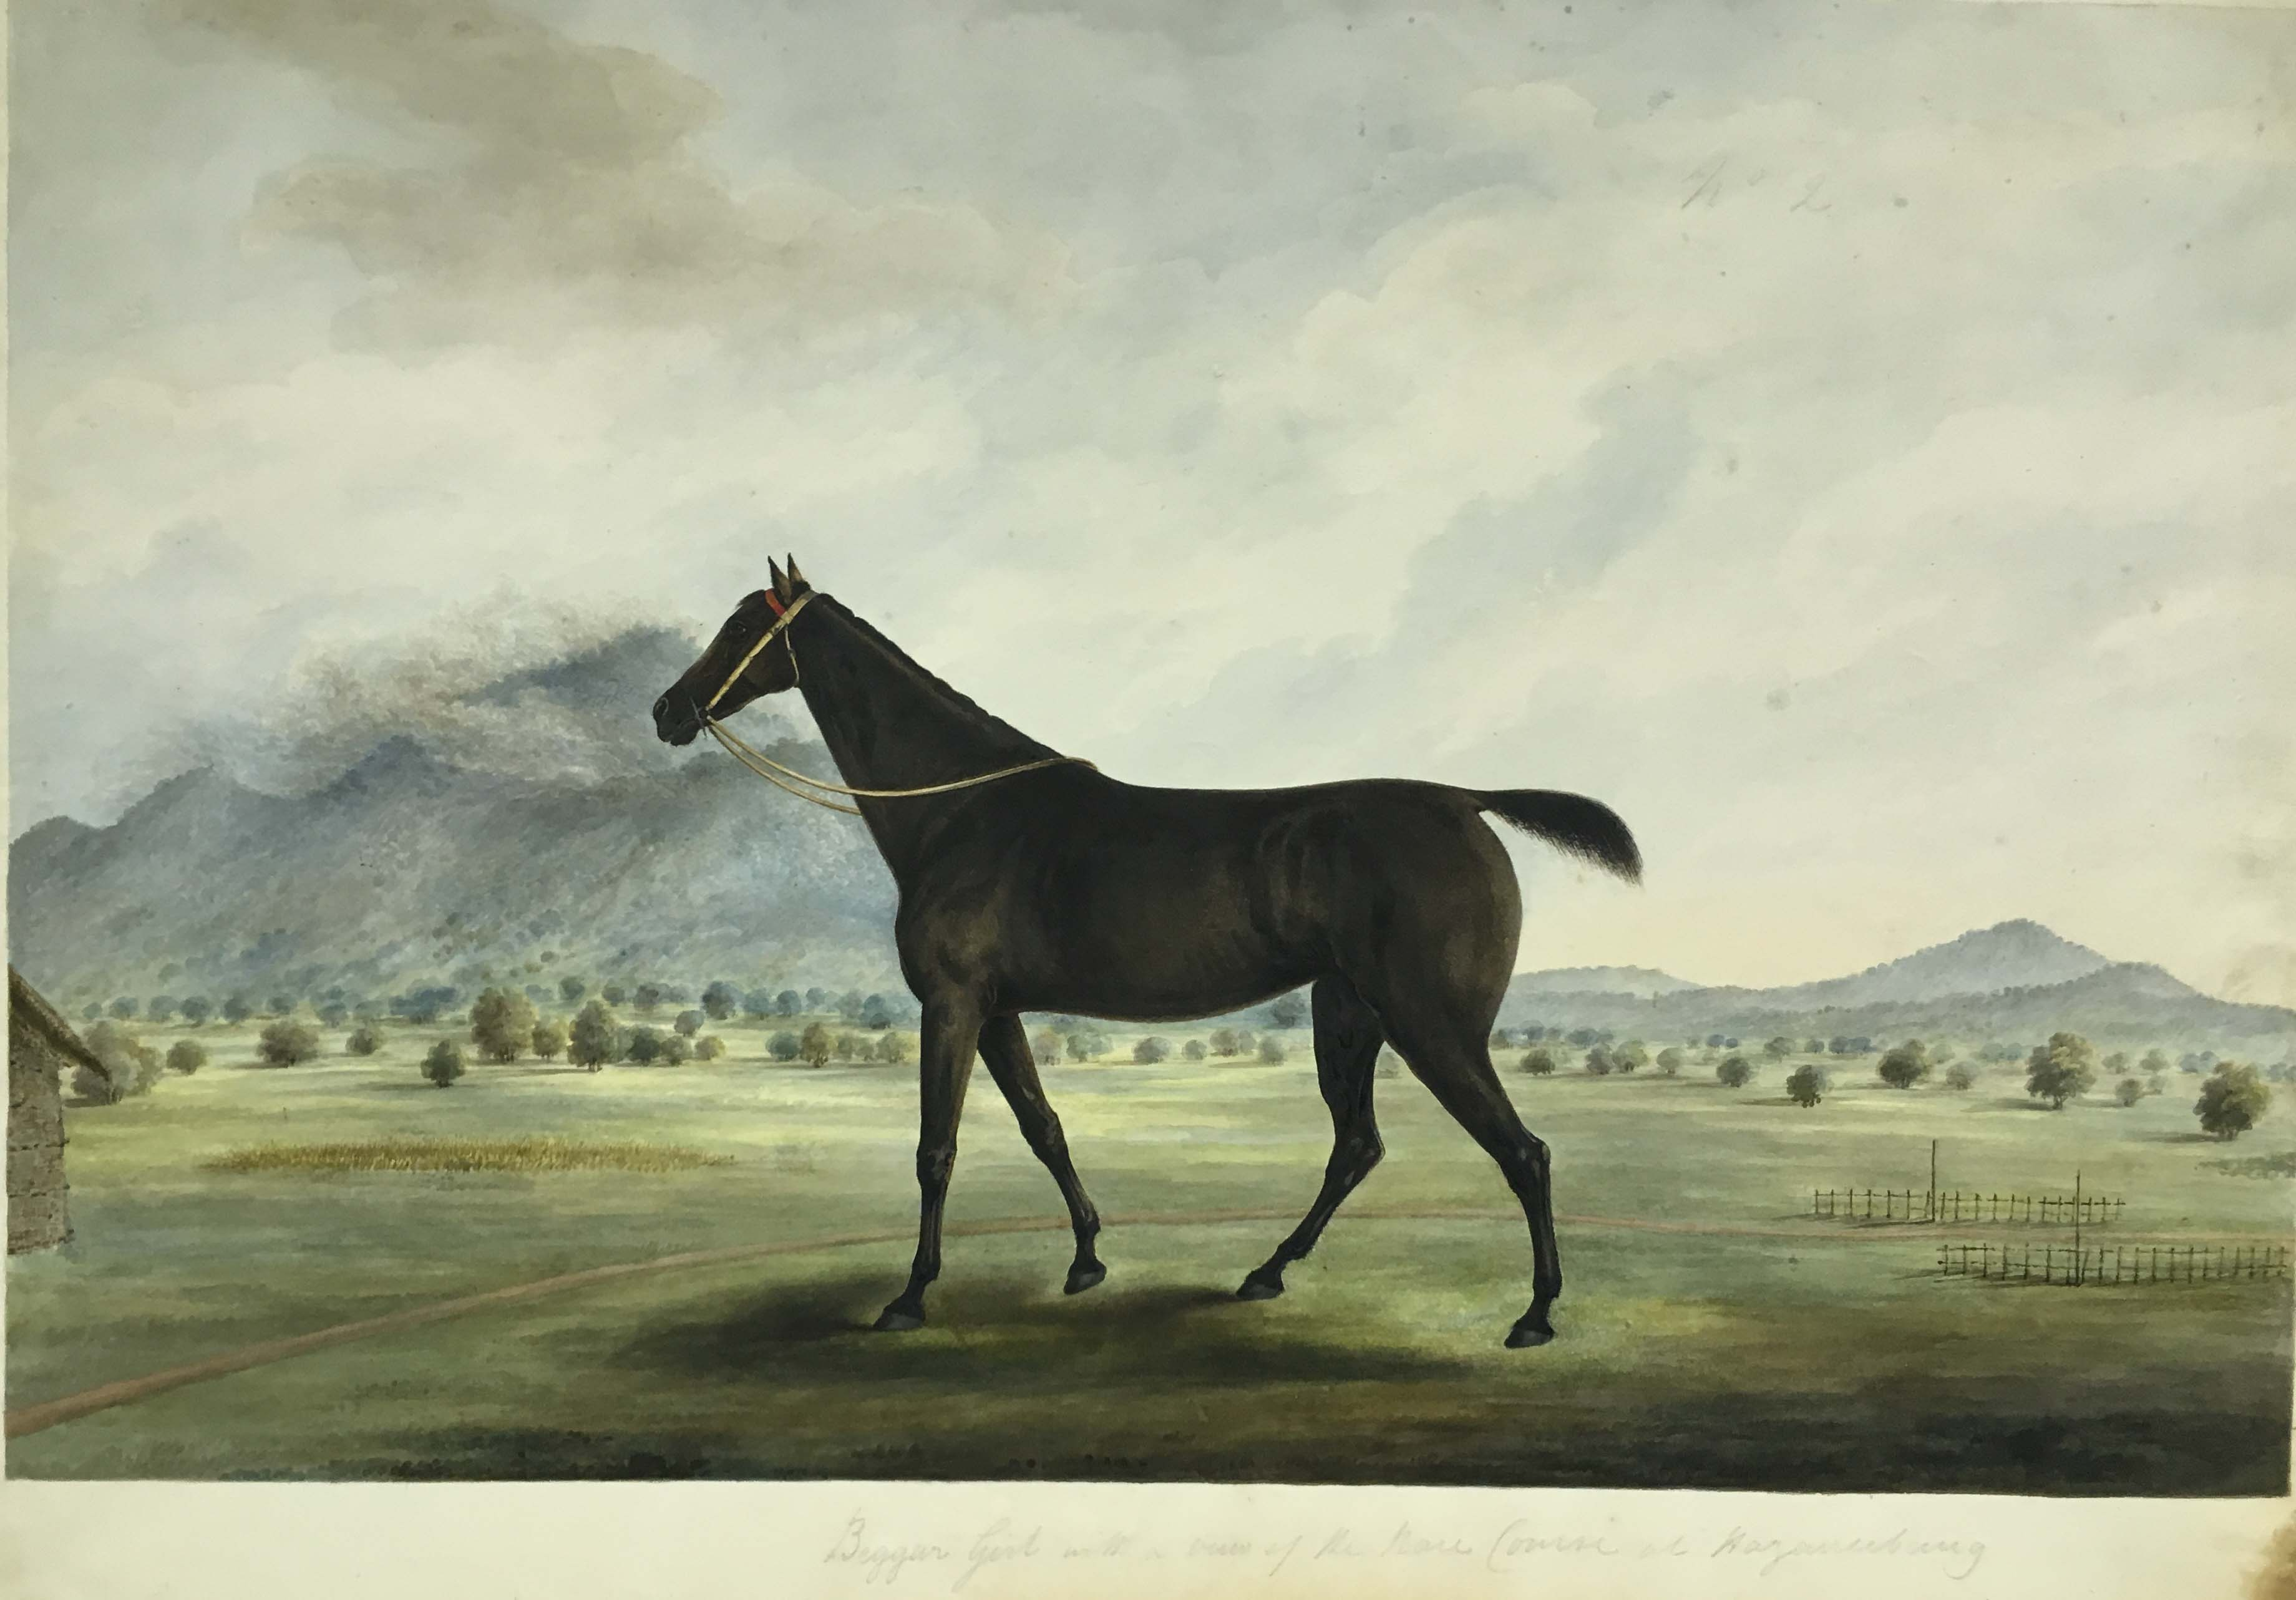 Gilbert's race-horse, 'Beggar Girl', standing on the race course at Hazaribagh. By the 'Gilbert artist', 1822-28. Credit: British Library